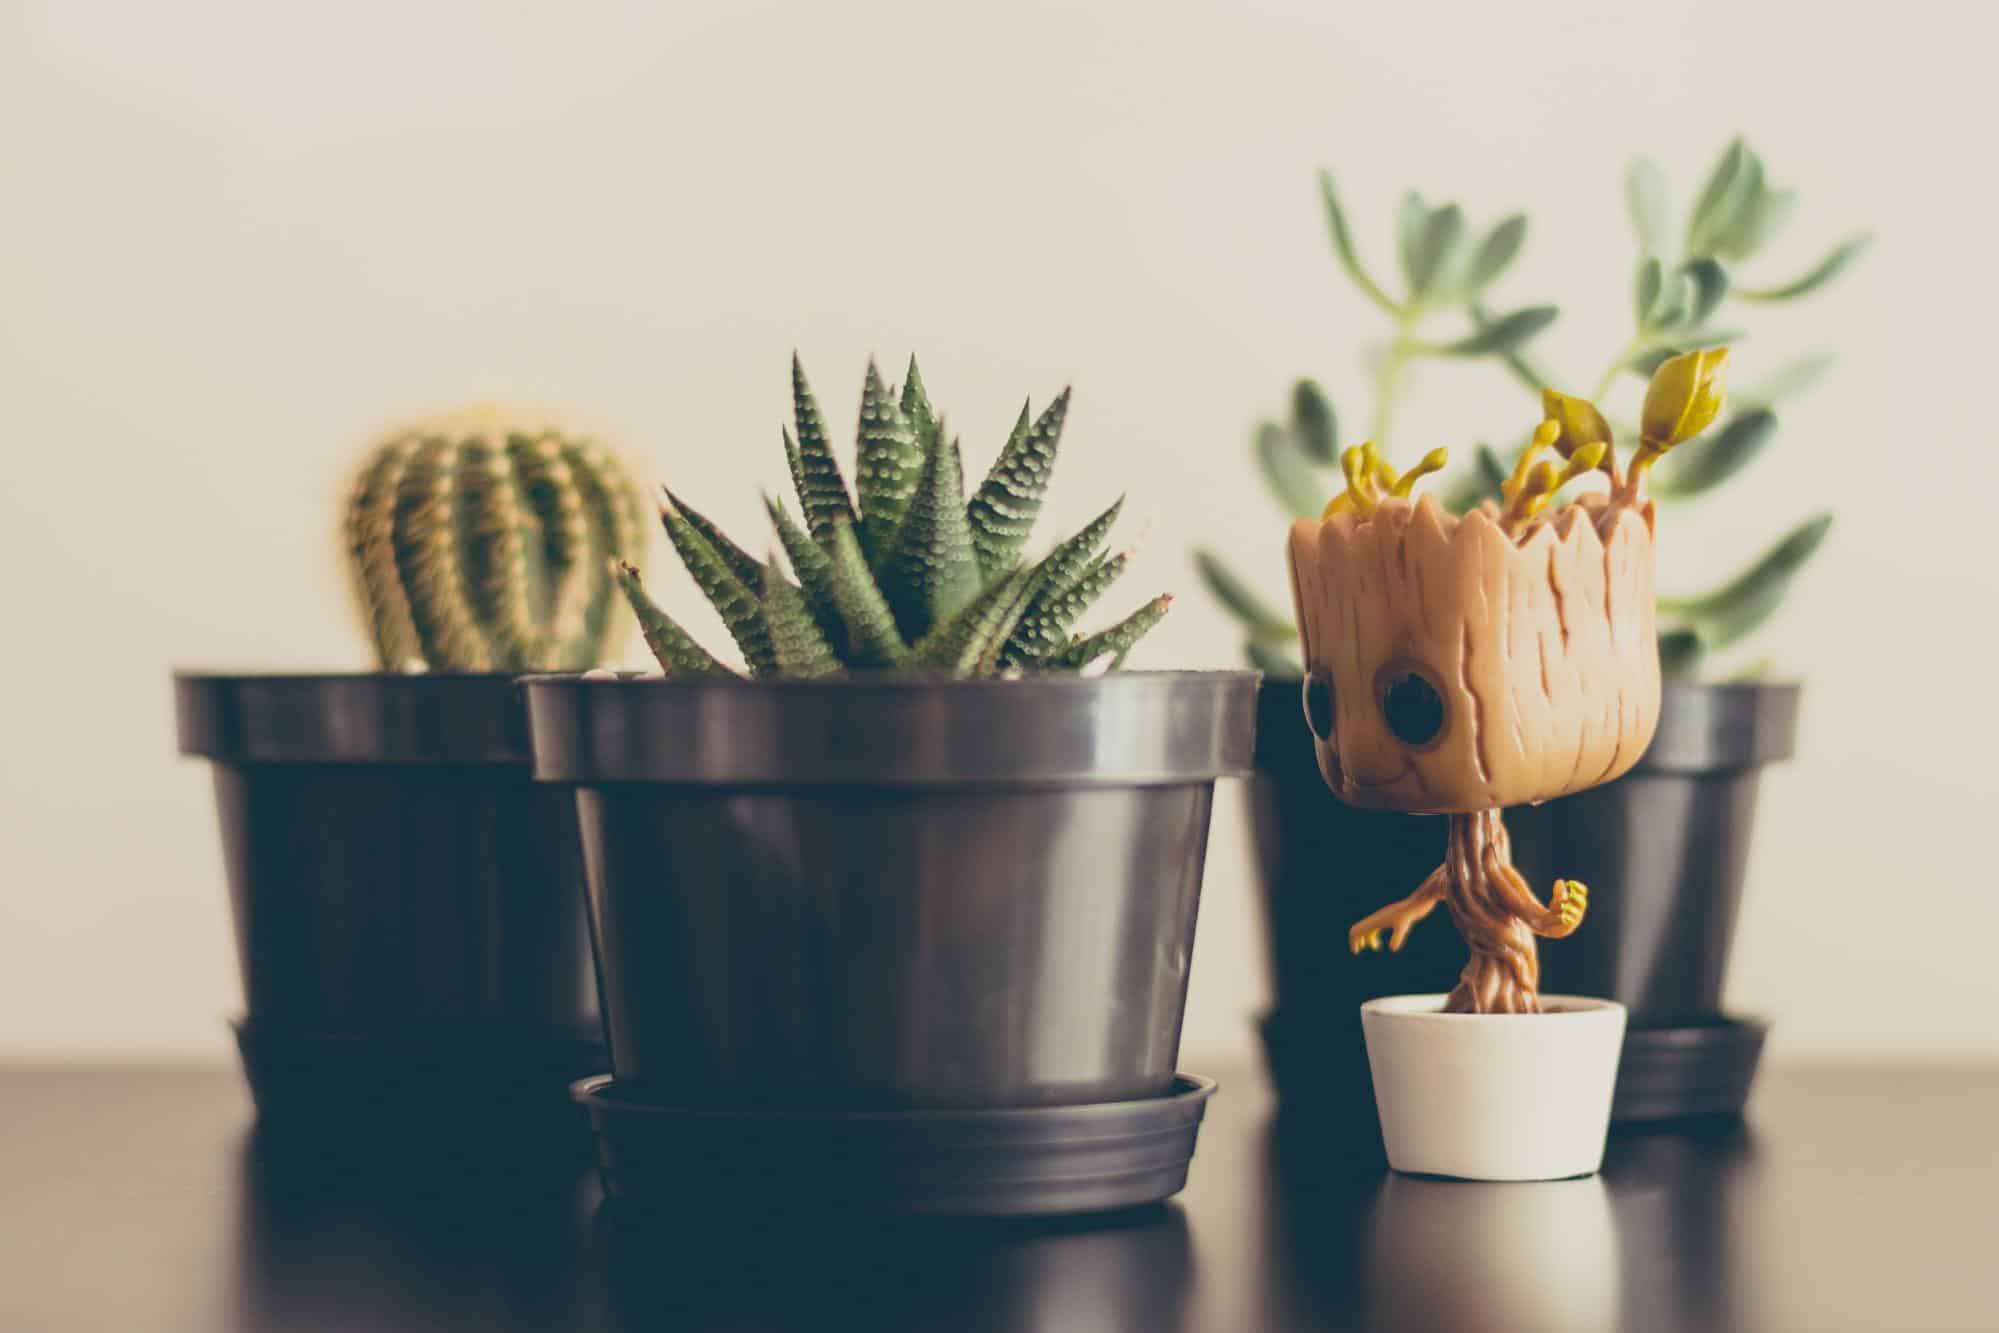 potted plants and a baby Groot figurine on a table